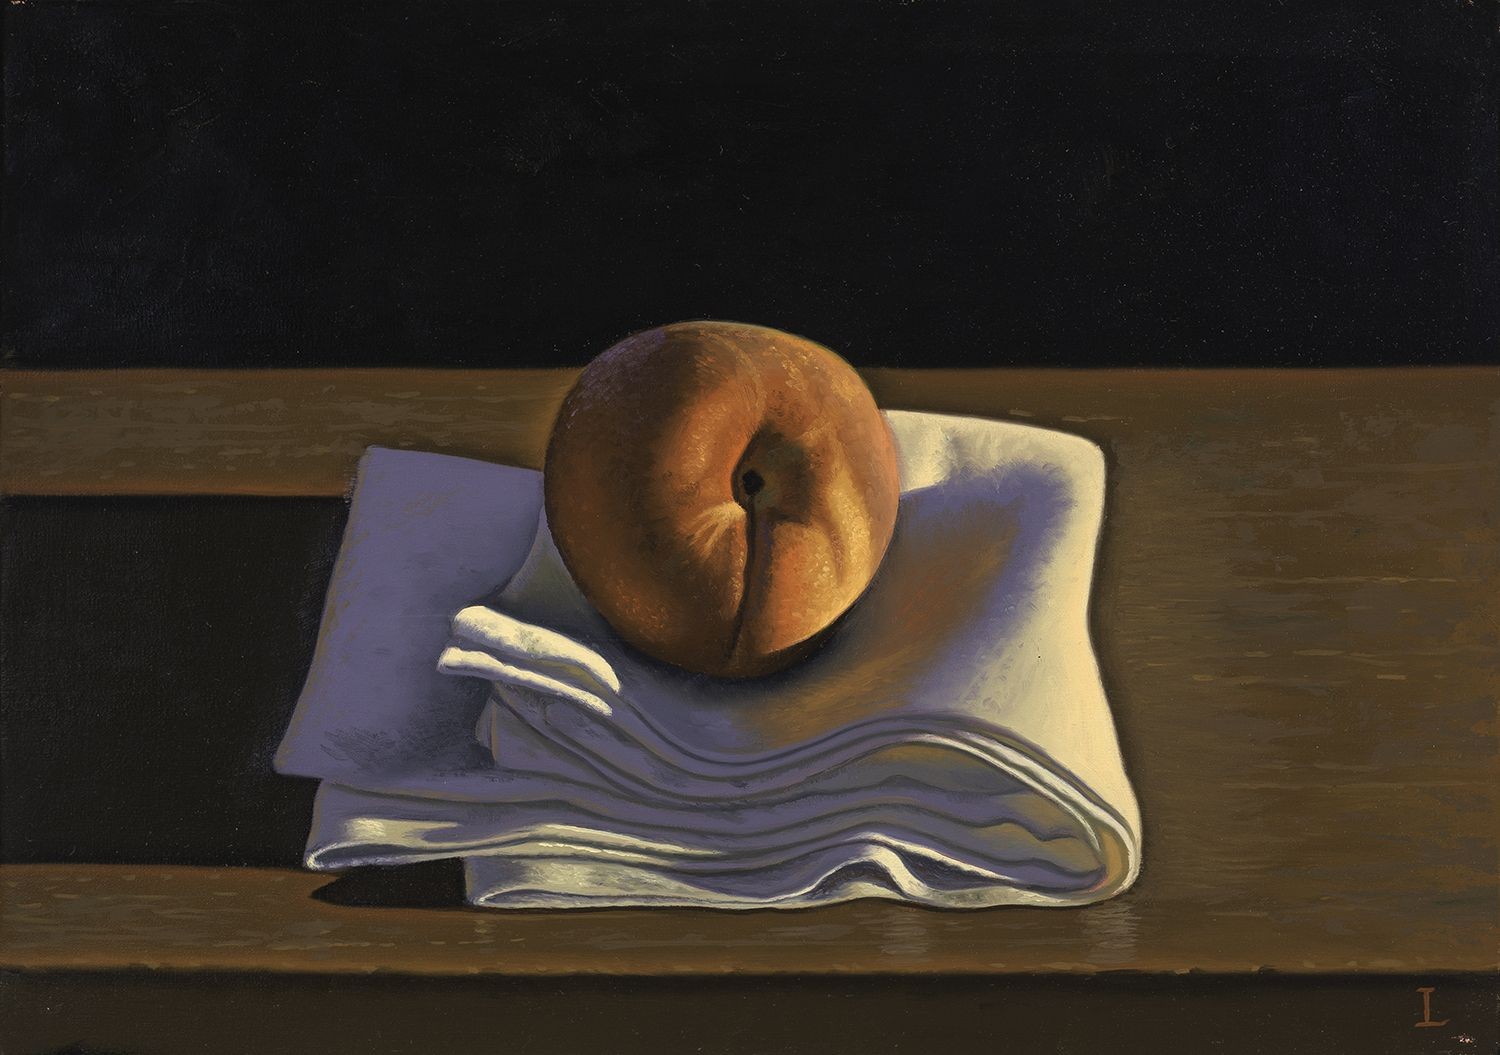 David Ligare (b. 1945), Still Life with Peach on Cloth, 2014